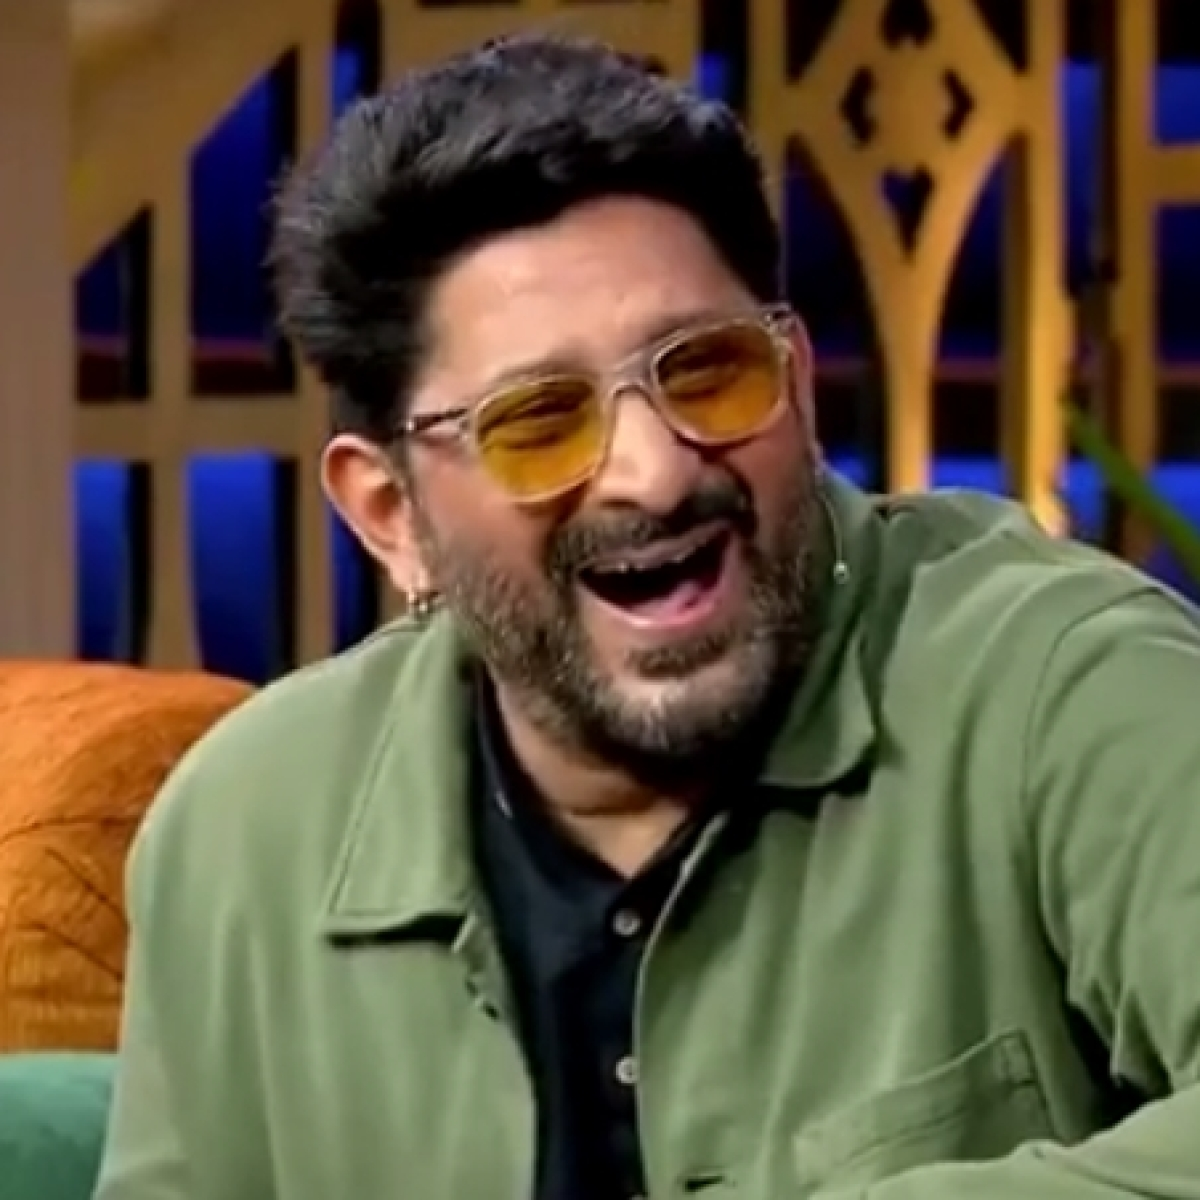 'How did you pay your EMIs?': Kapil Sharma roasts Arshad Warsi over no 'Golmaal', 'Dhamaal' sequels this year